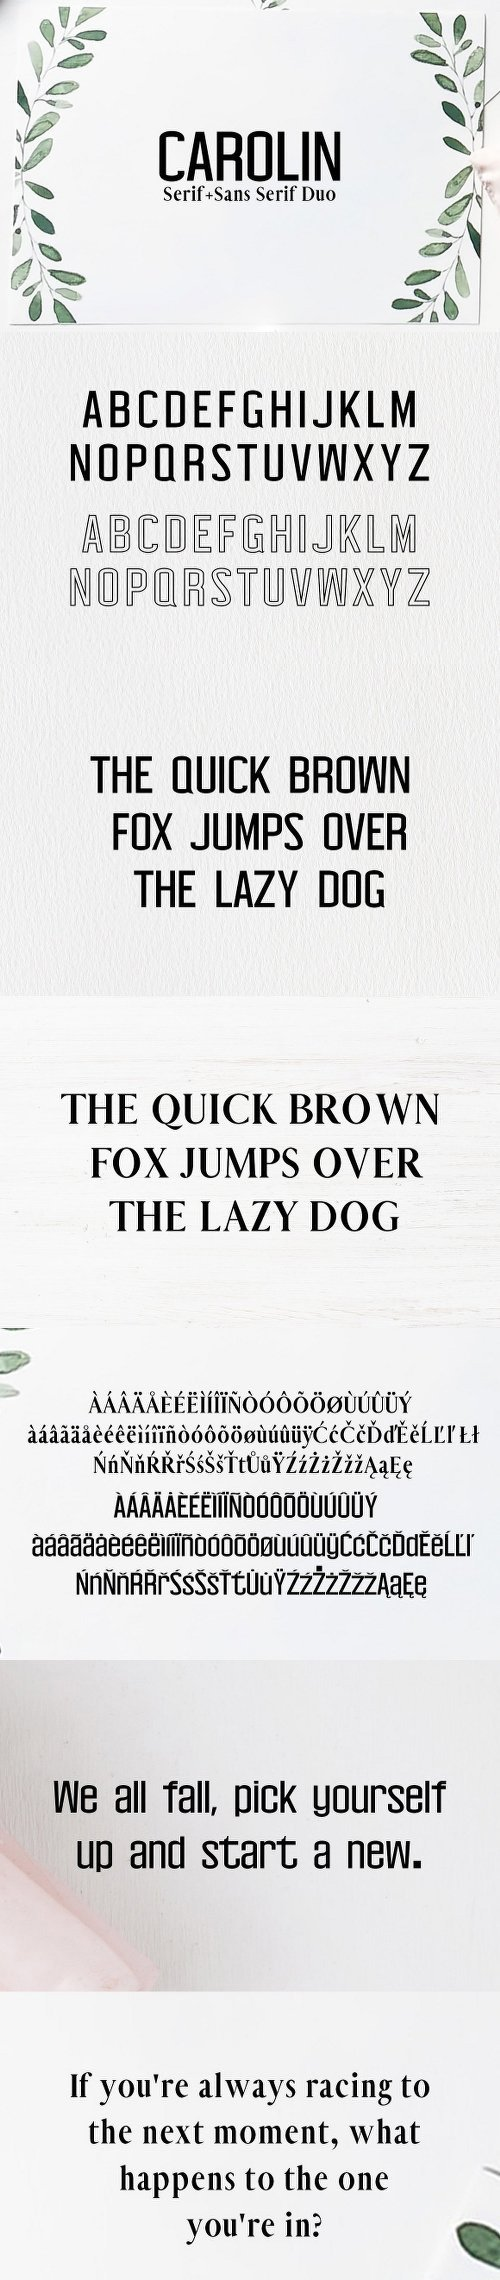 Carolin Duo 5 Font Family Pack 2176255